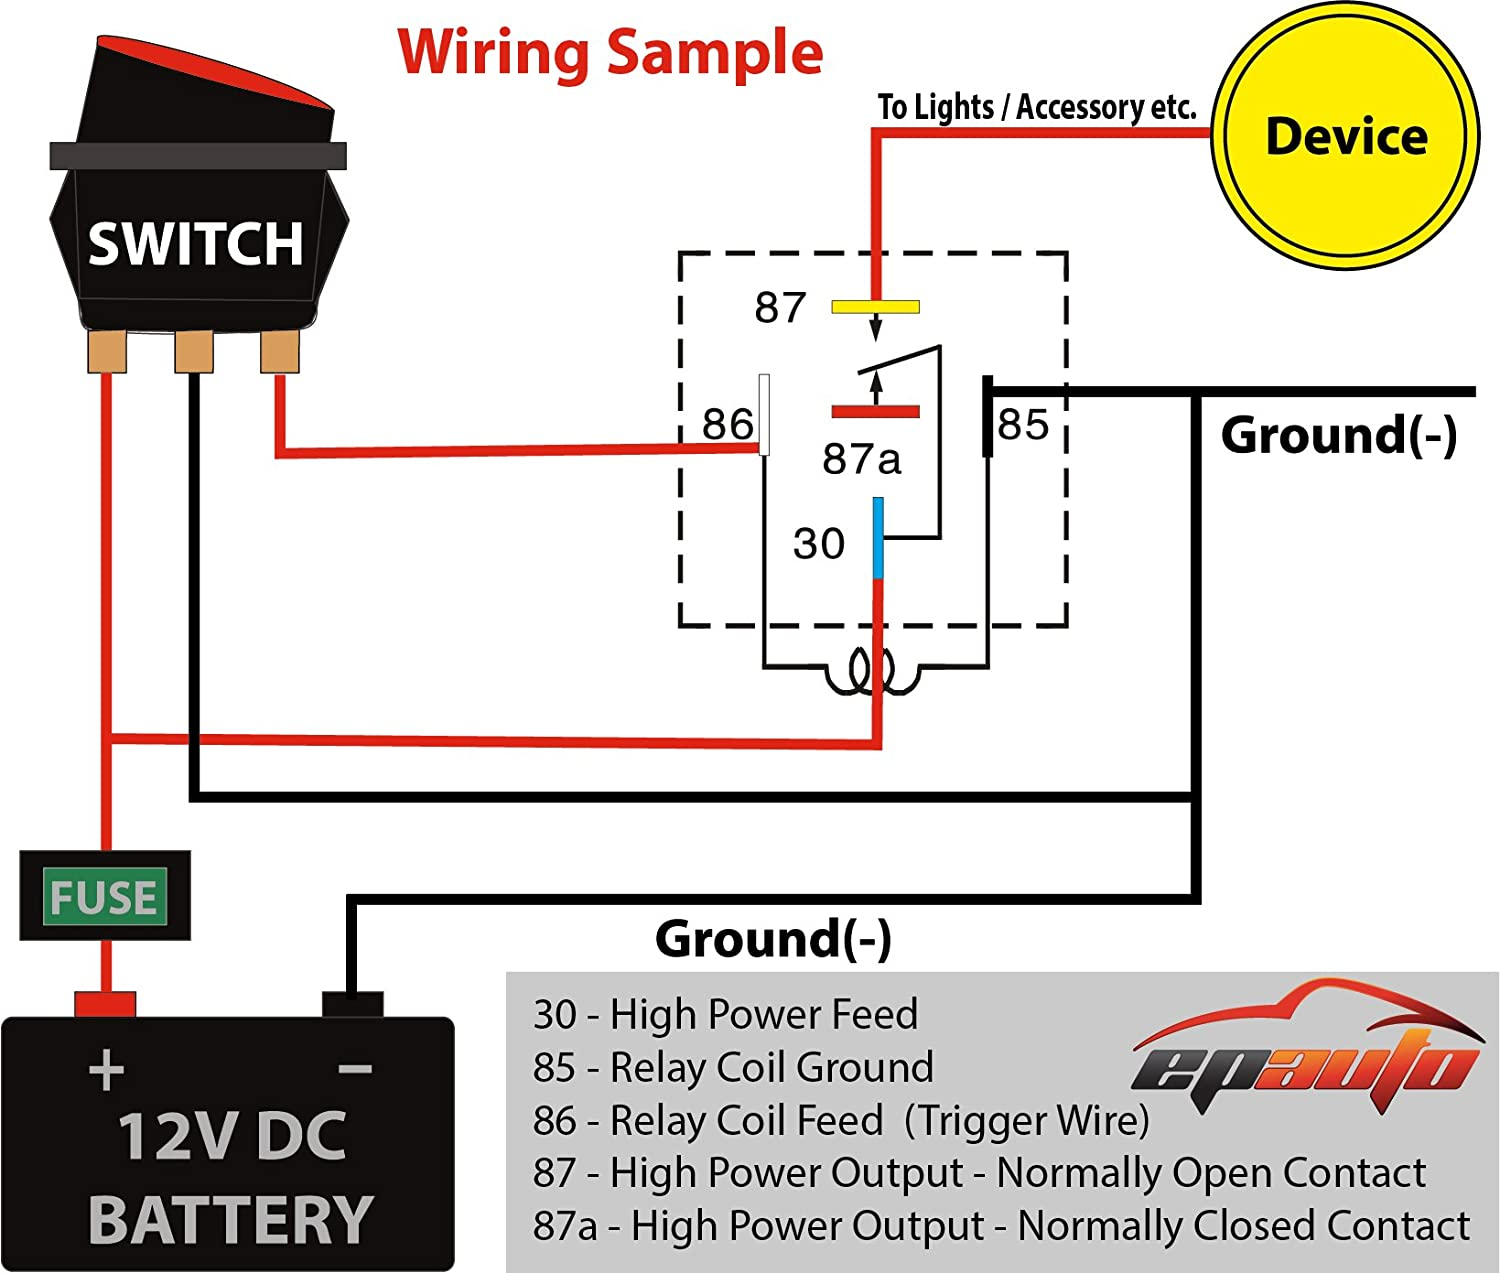 [DIAGRAM_3US]  Amazon.com: 5 Pack - EPAuto 30/40 AMP Relay Harness Spdt 12V, 5-PIN SPDT  Bosch Style: Automotive | 12 Volt Relay Wiring Schematic |  | Amazon.com